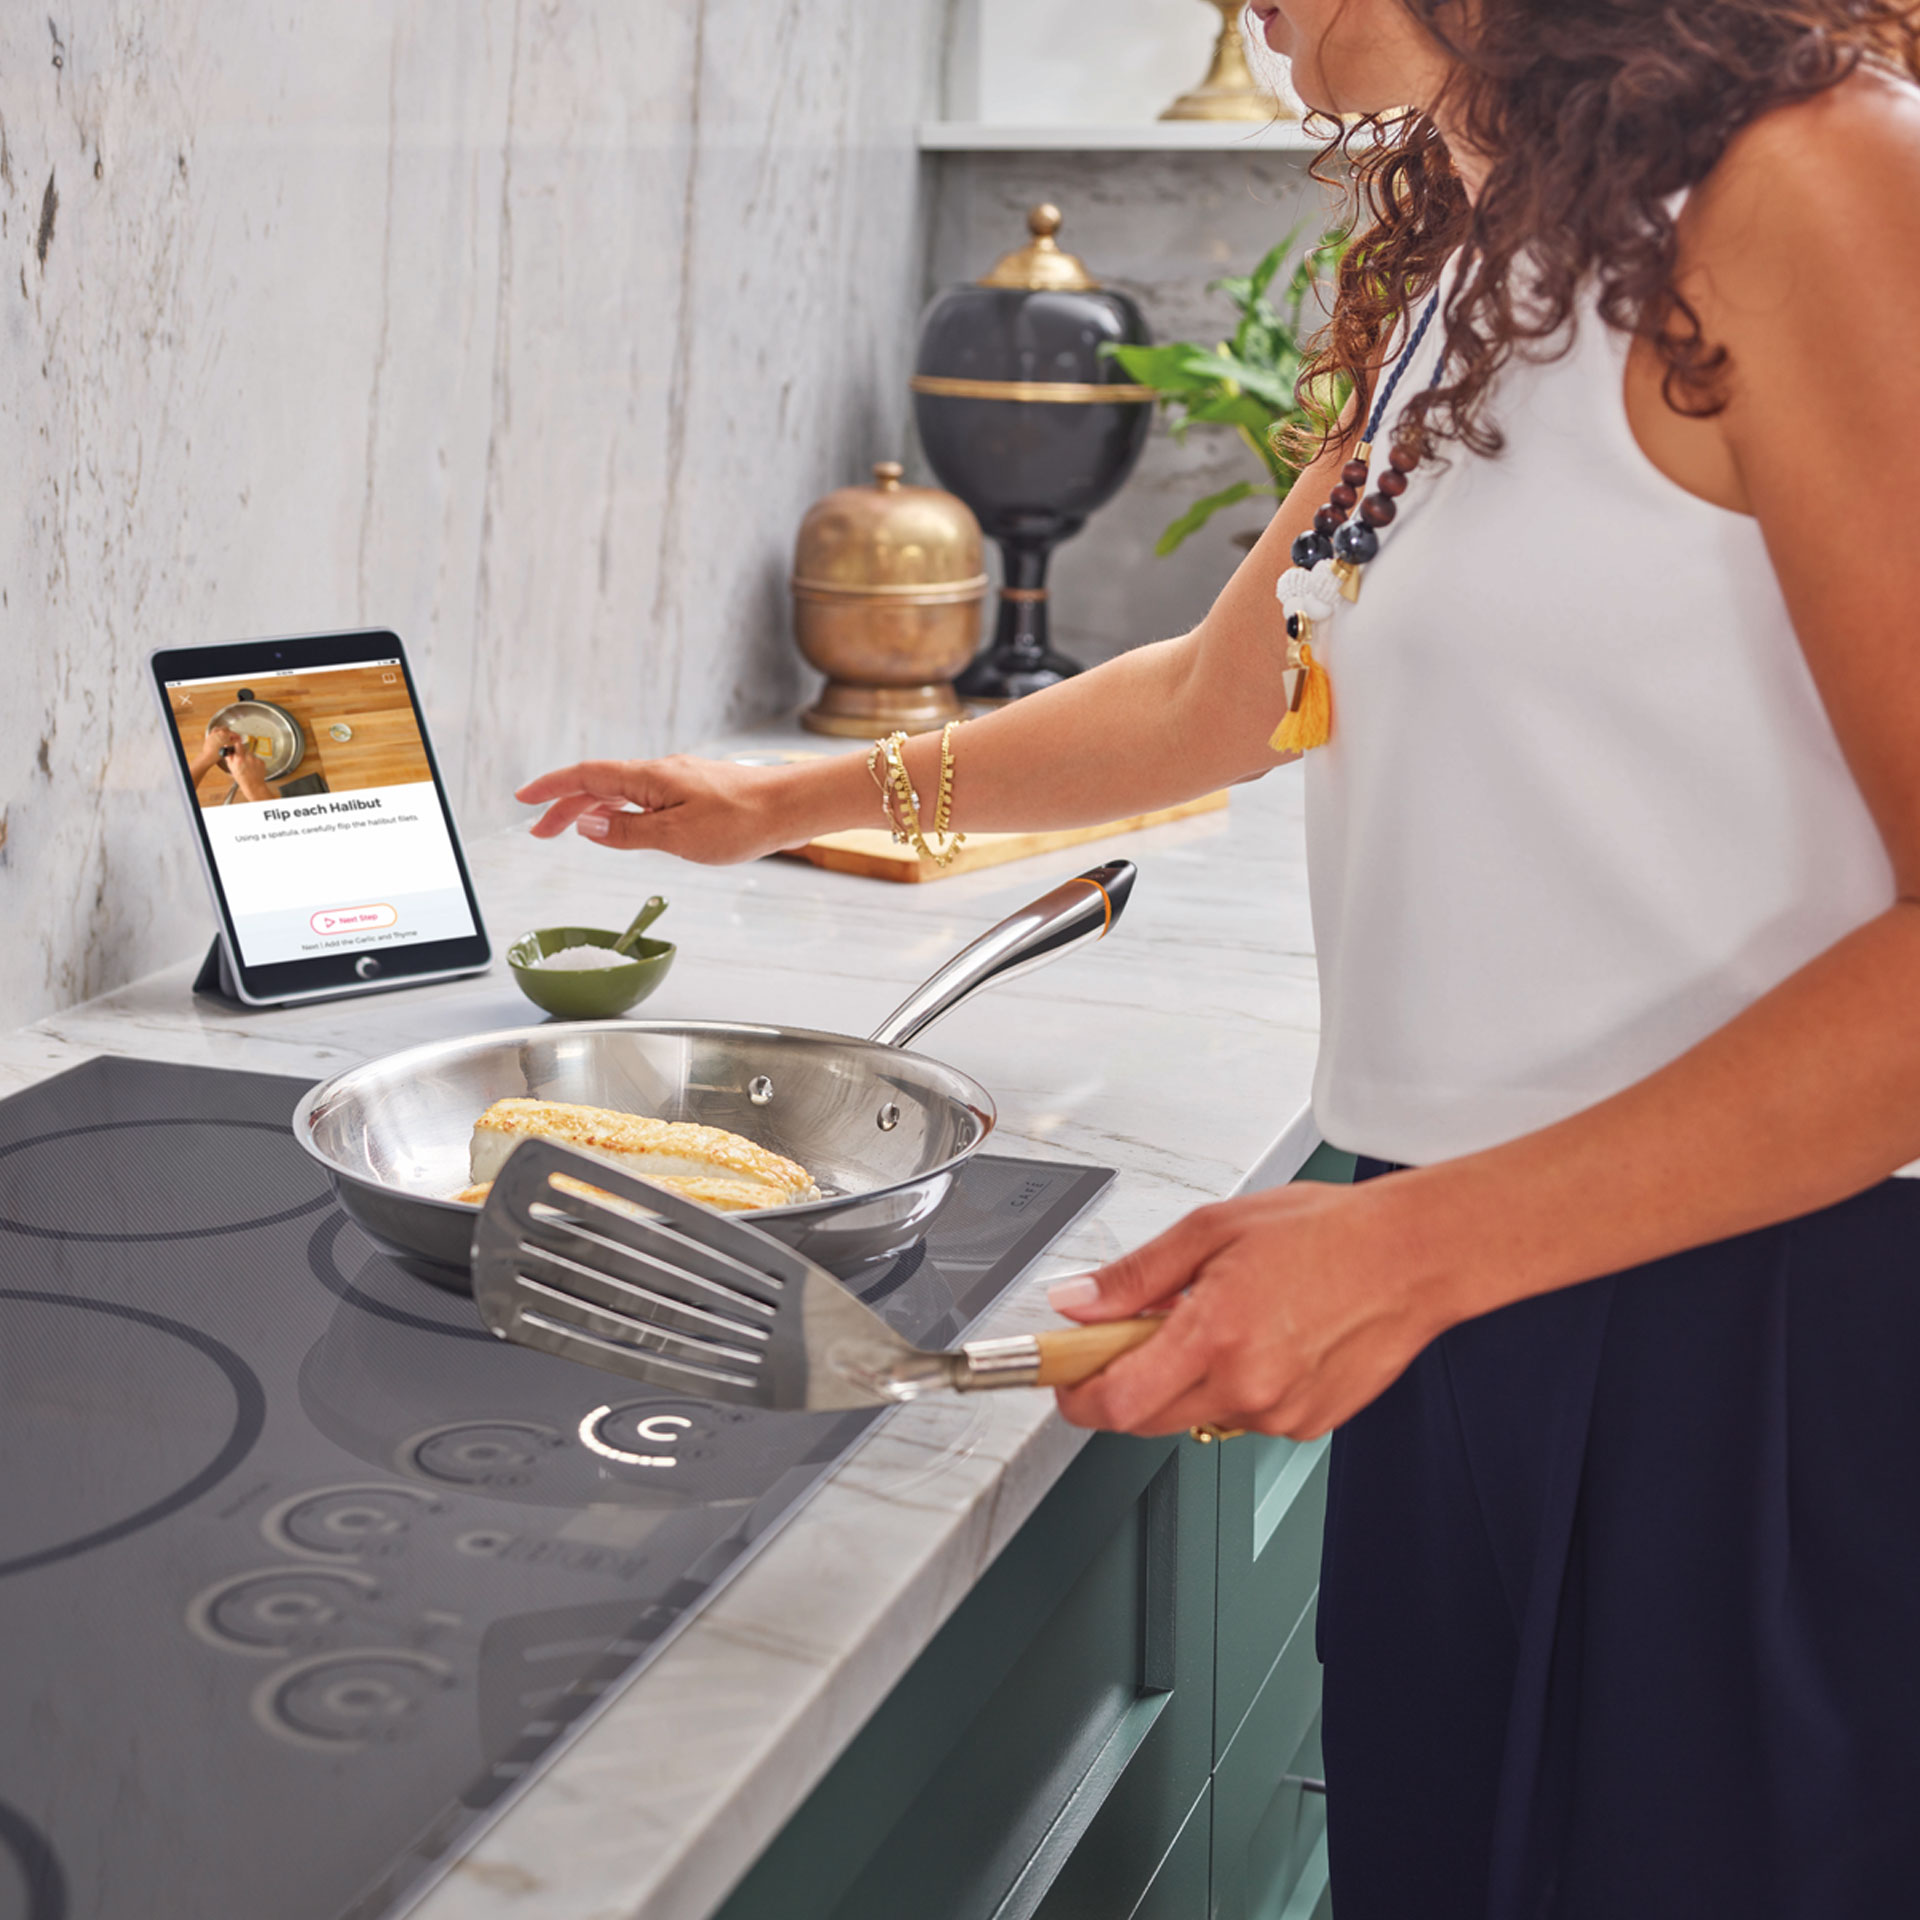 woman cooking on induction cooktop using Hestan Cue